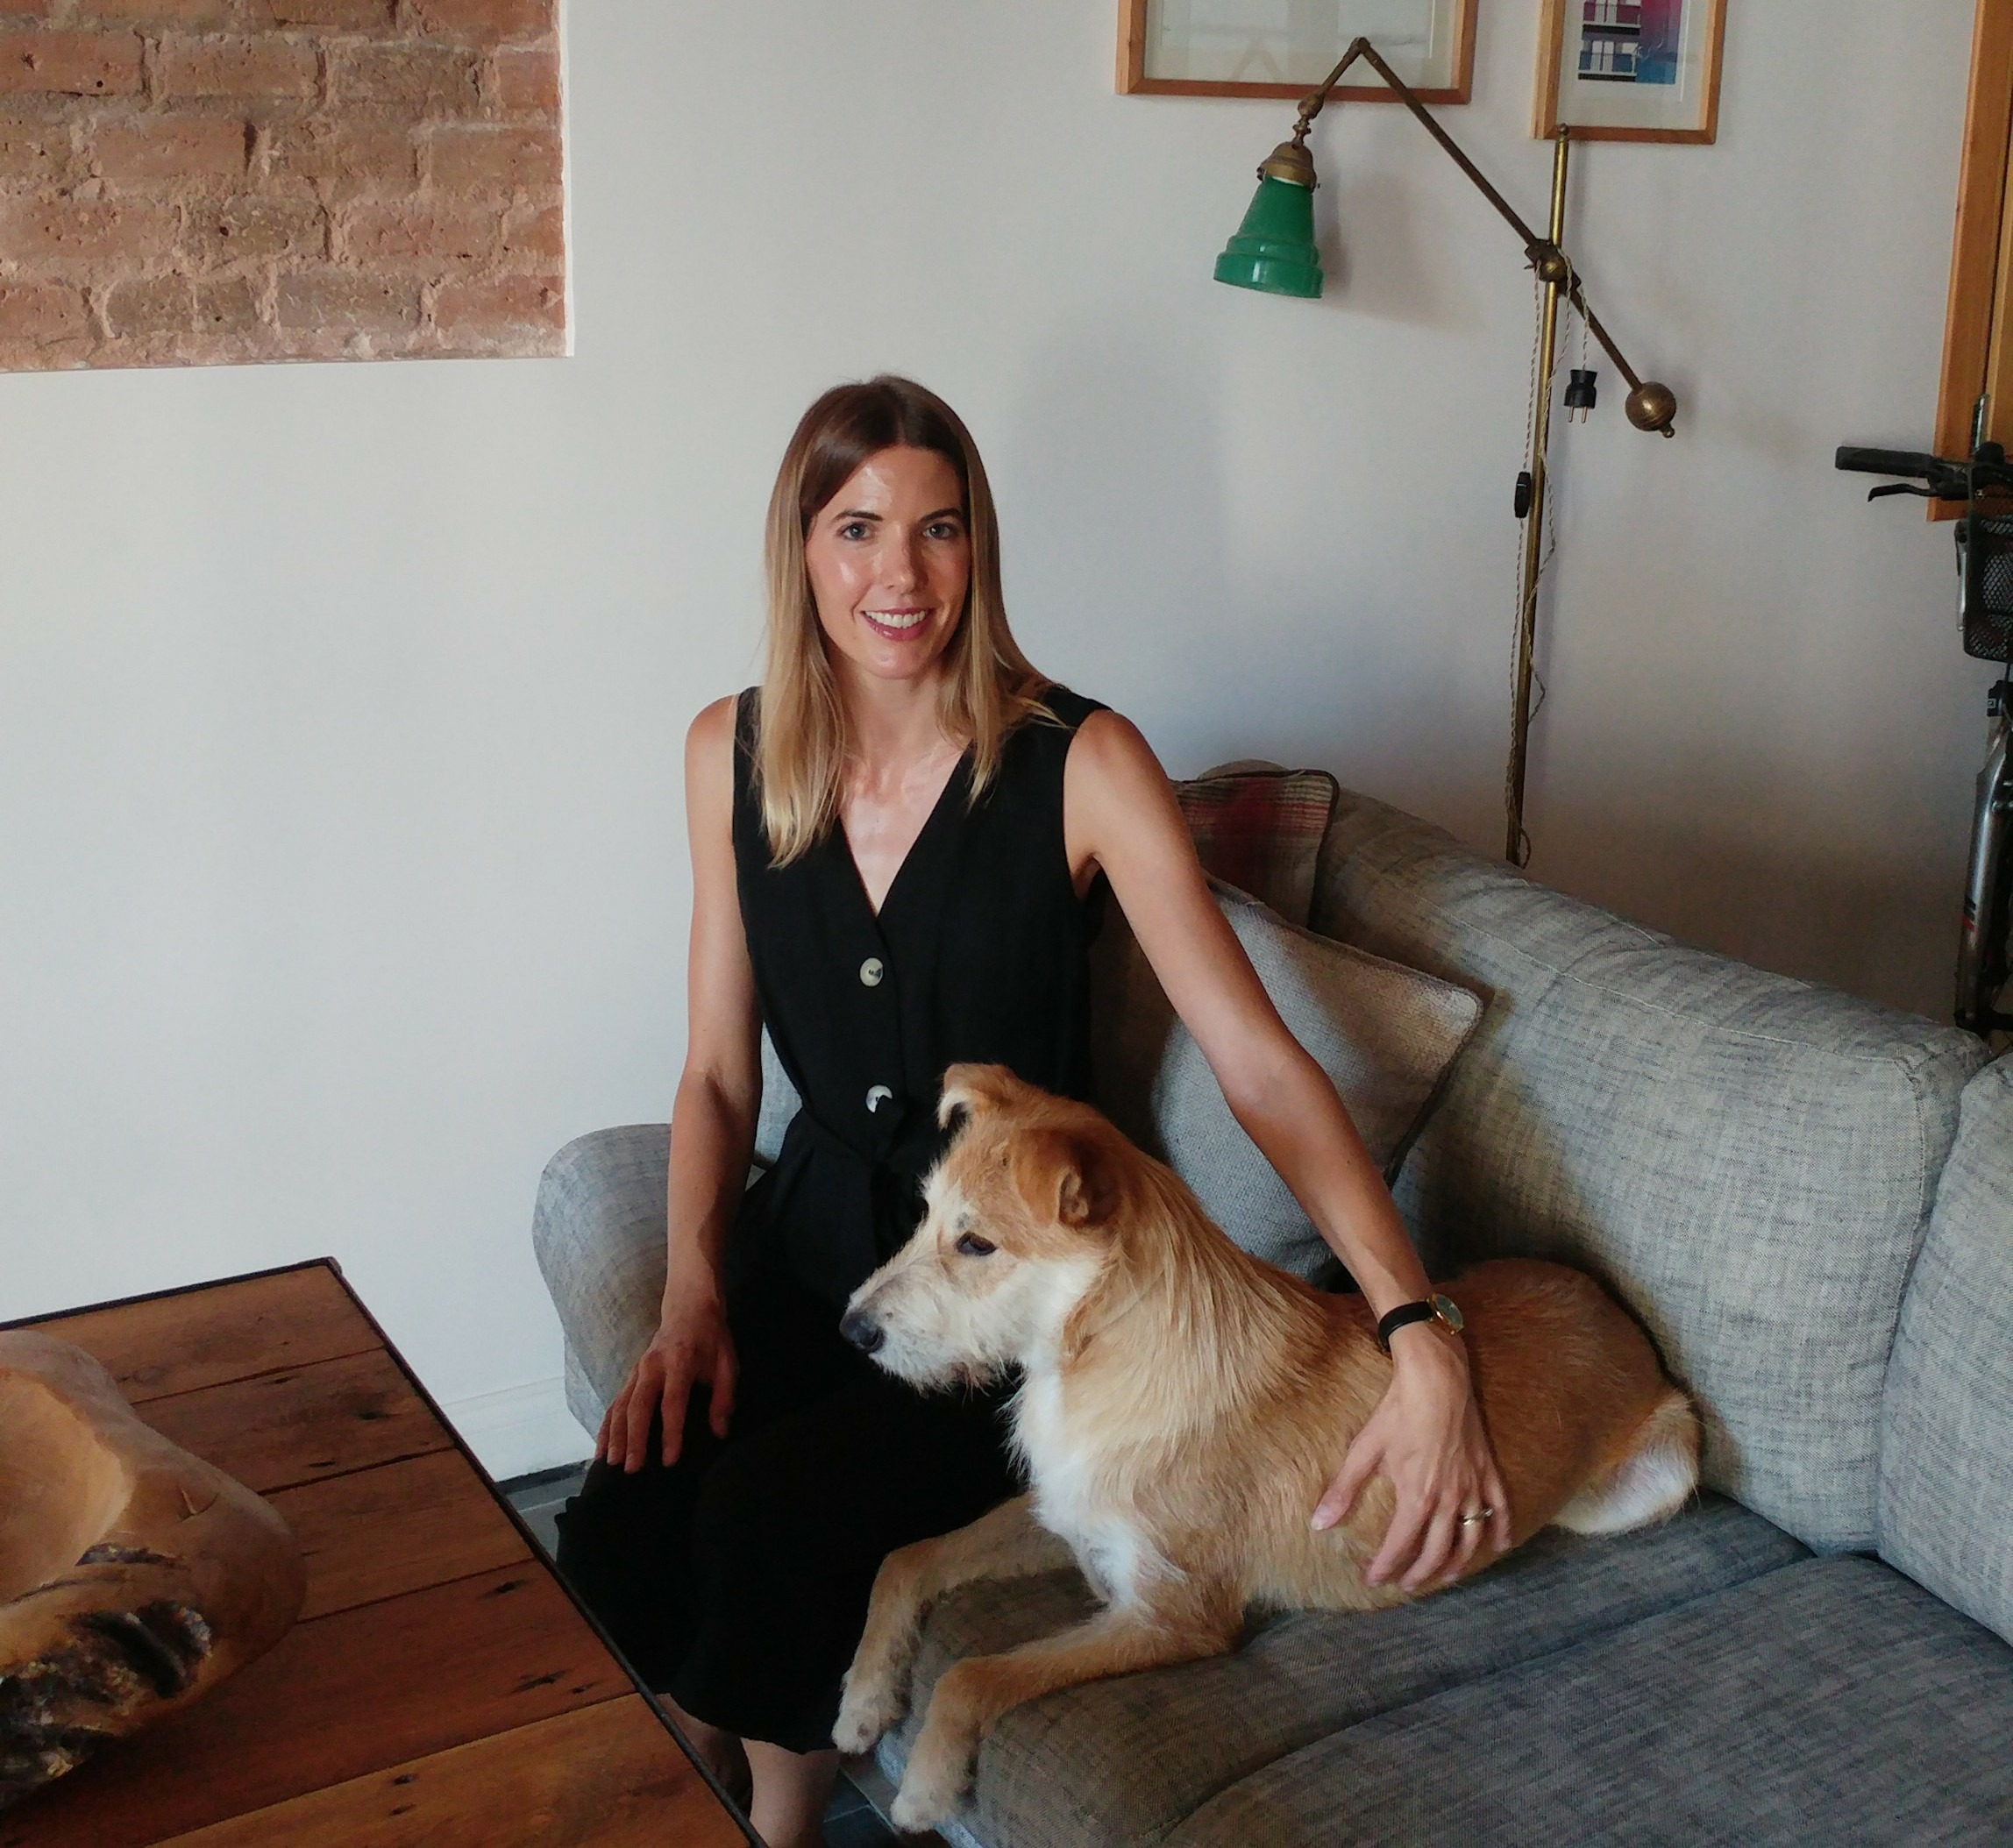 Gemma Askham and her puppy Diego in their Barcelona home